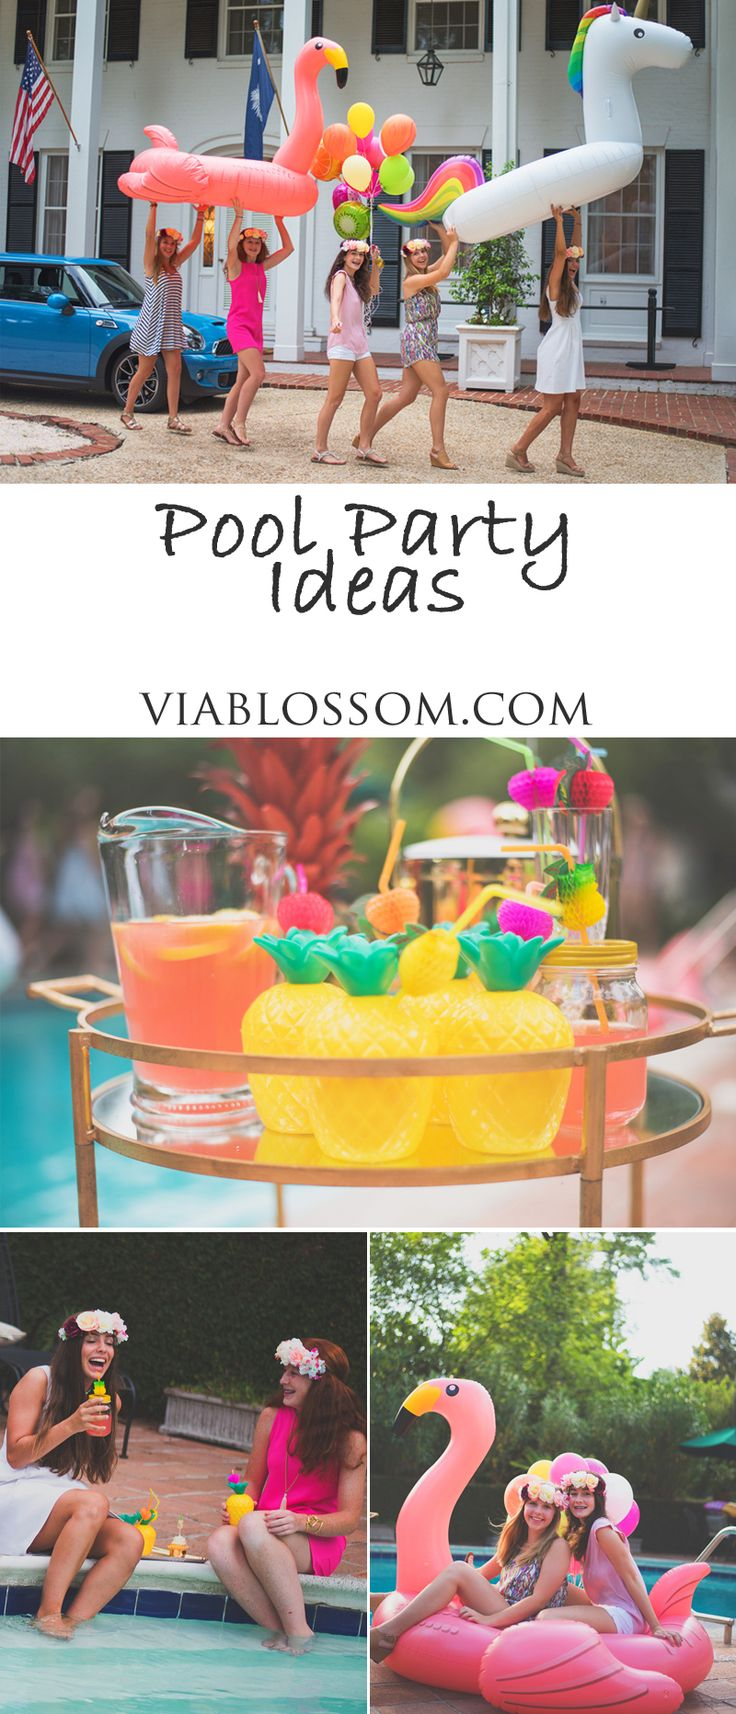 How to throw a fun pool party at the Via Blossom Blog!!  All the Tropical Pool Party decorations and ideas!